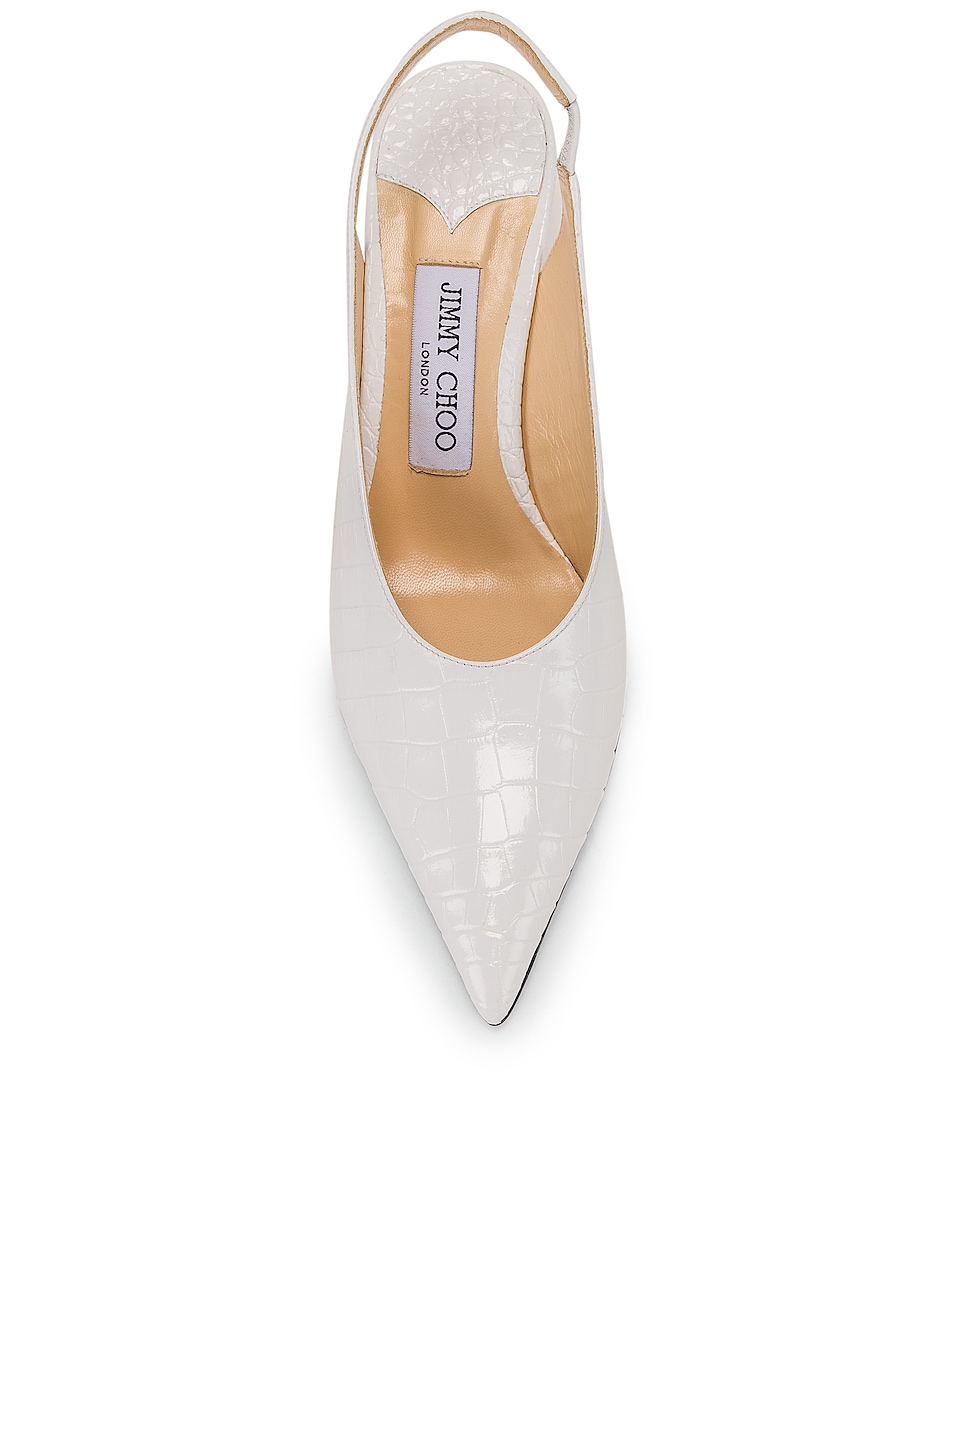 Image 4 of Jimmy Choo Ivy 85 Heel in Latte